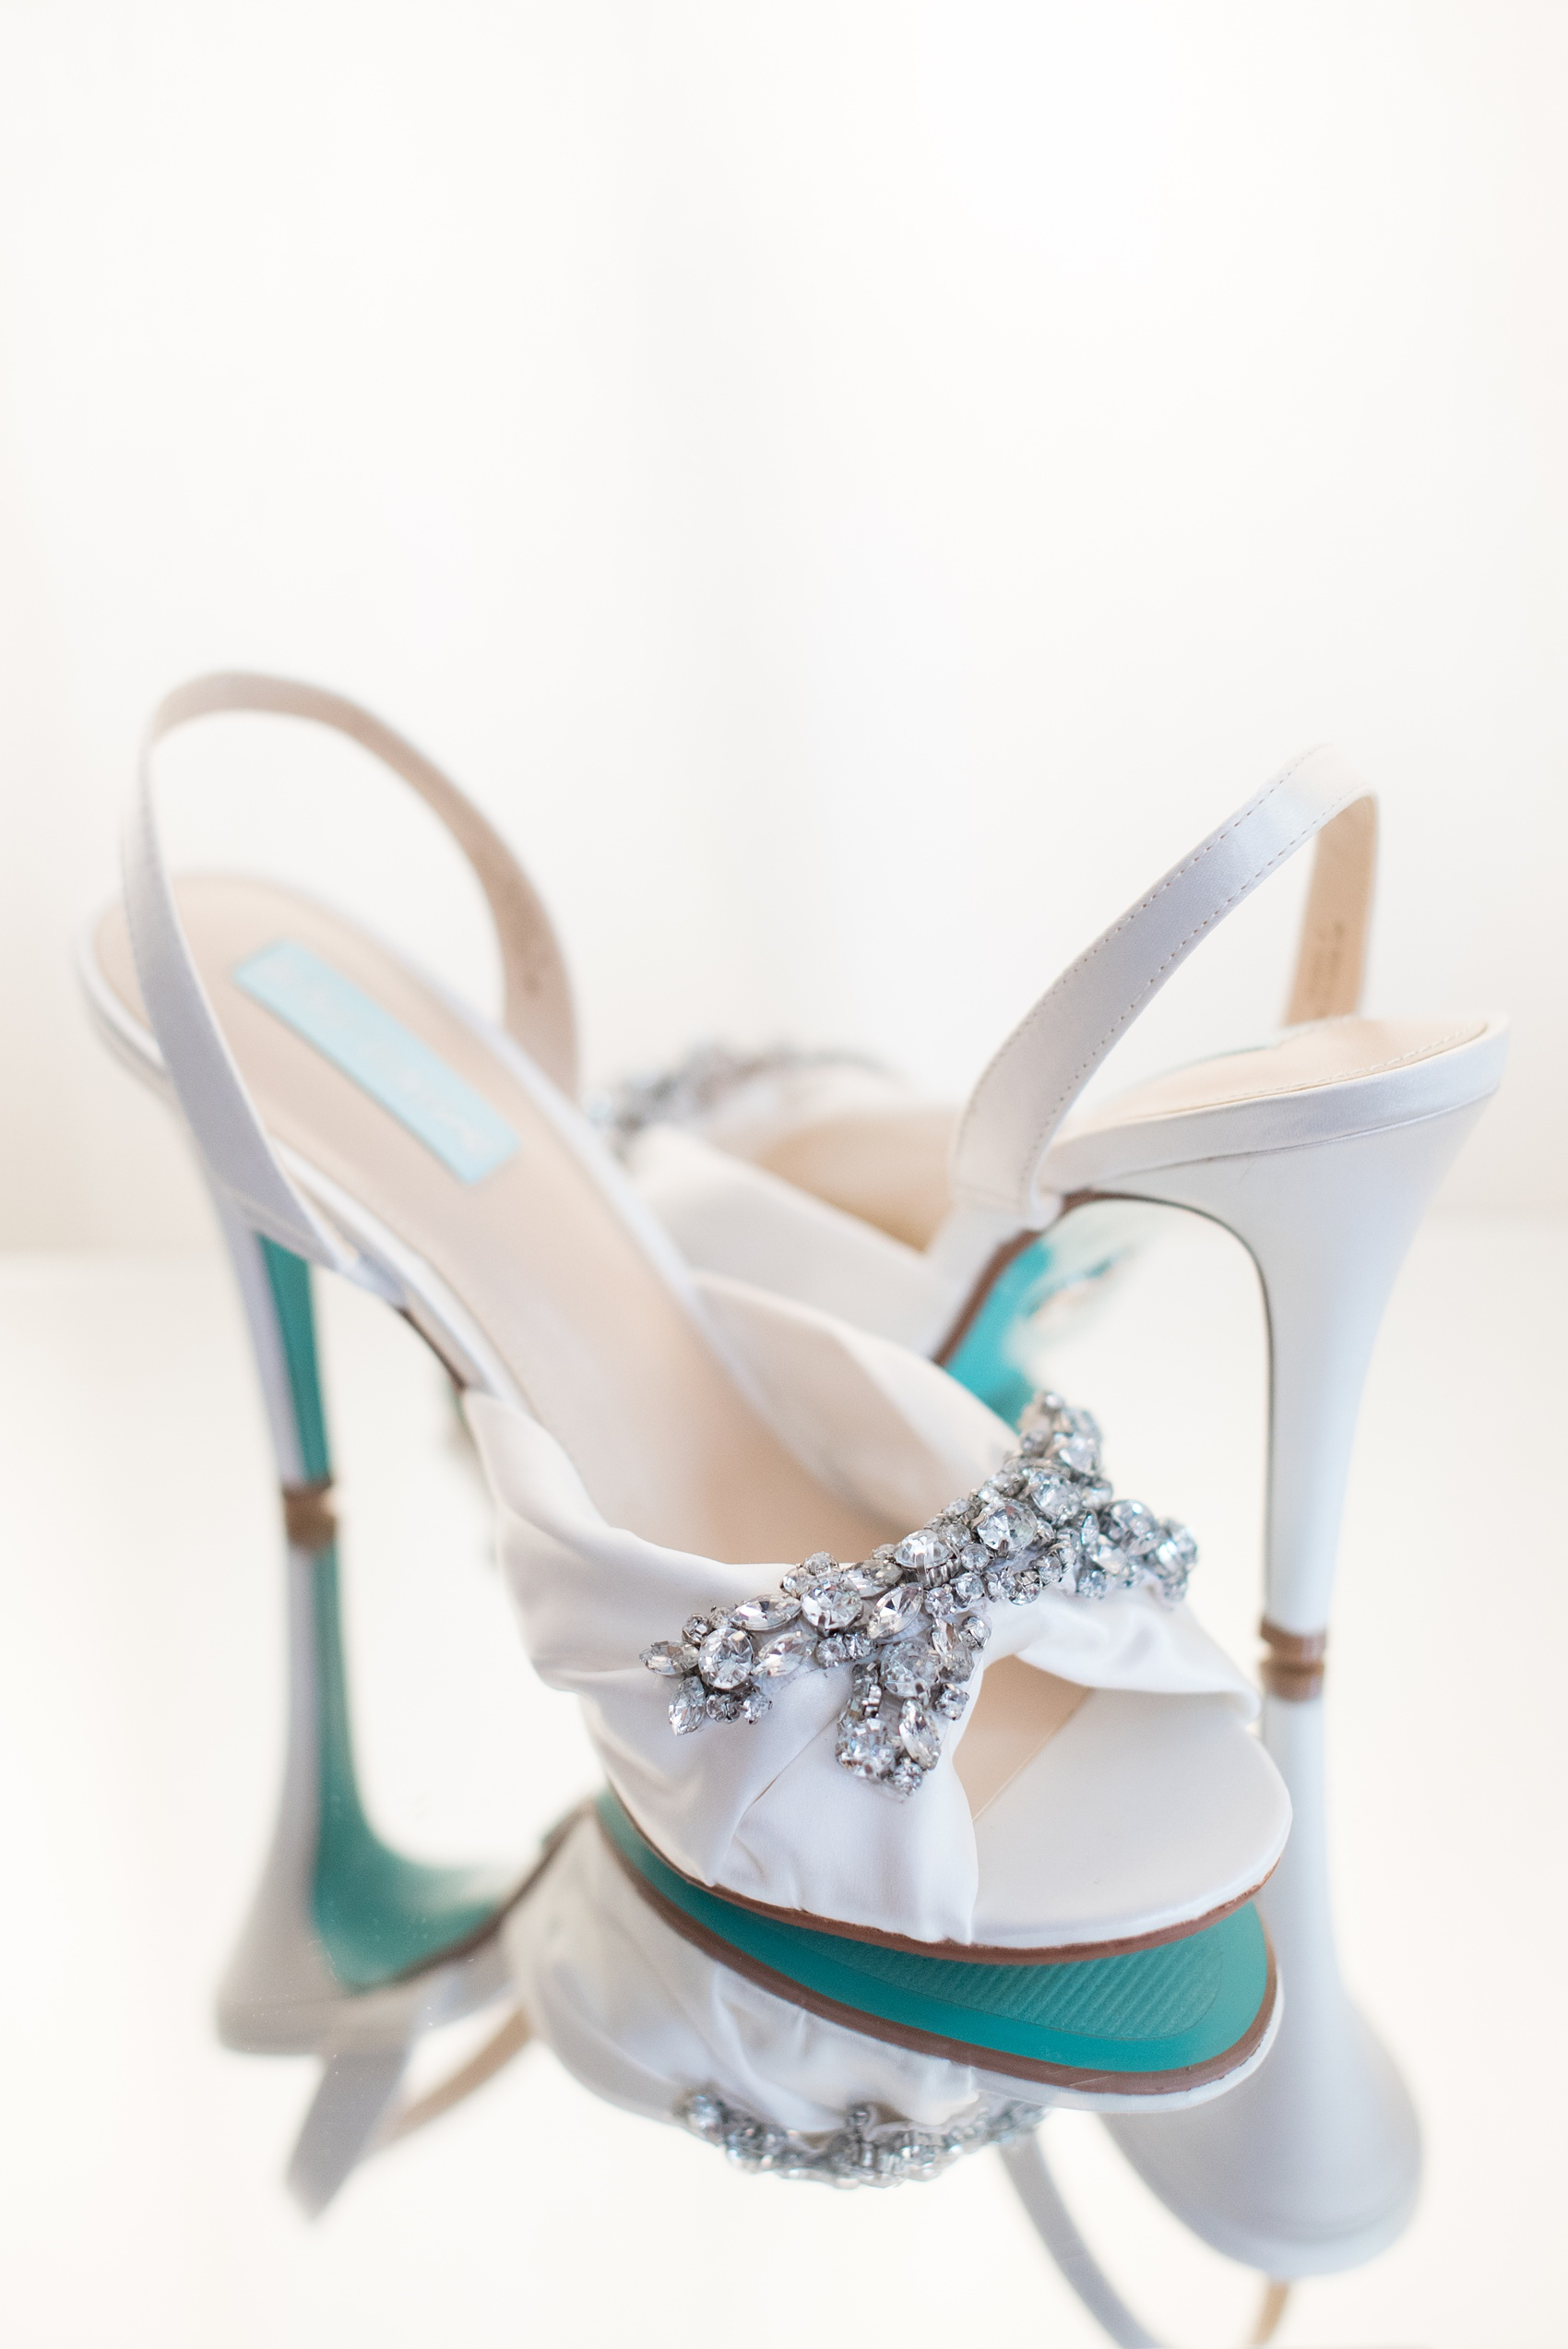 Mikkel Paige Photography pictures of a wedding at Leslie-Alford Mim's House in North Carolina for a Mad Dash Weddings event. Photo of the bride's blue-soled Betsey Johnson rhinestone bridal day shoes.